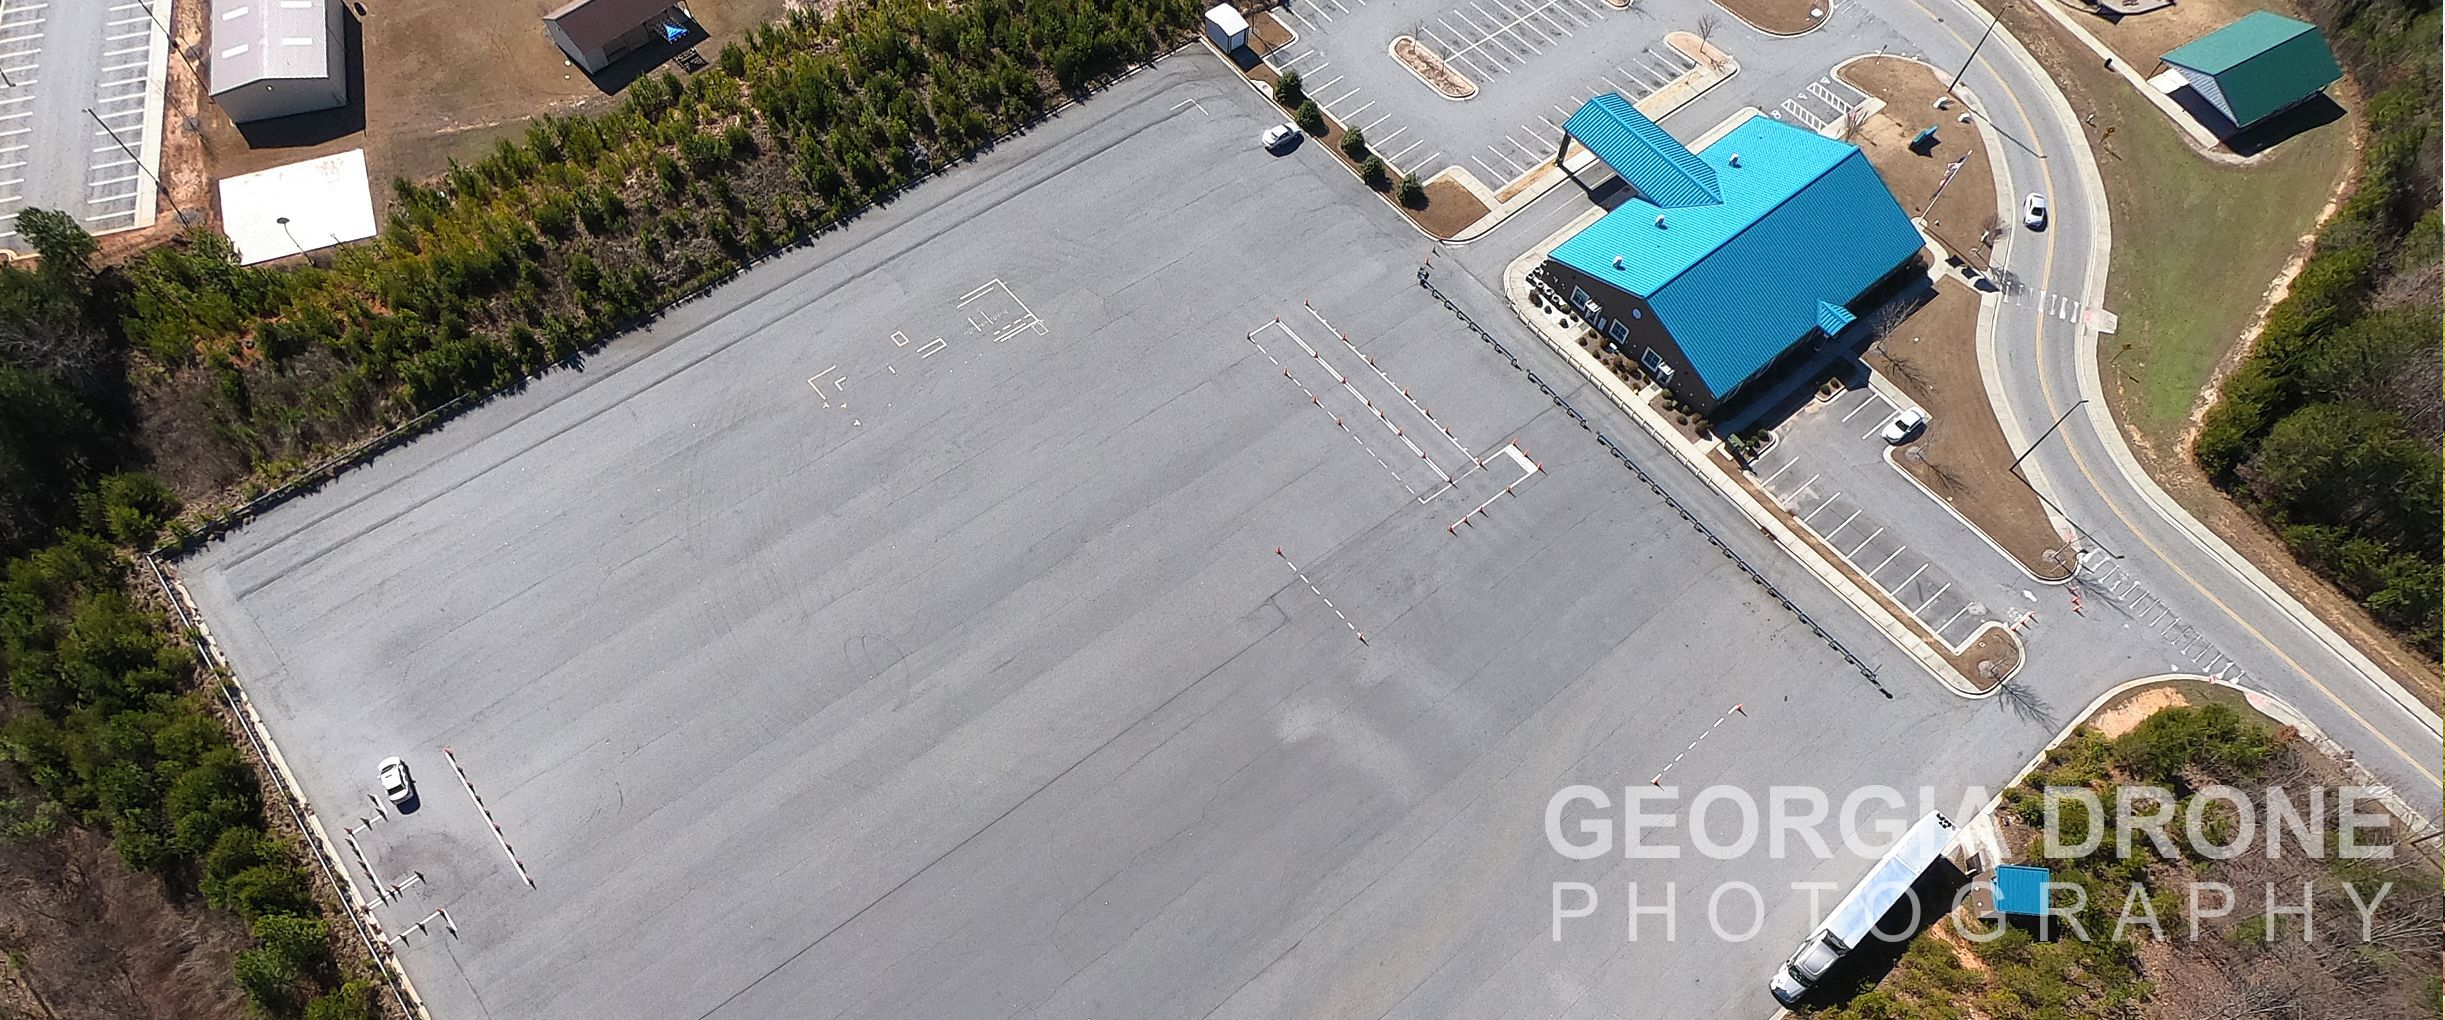 Drone inspection of commercial real estate in Cumming Georgia.